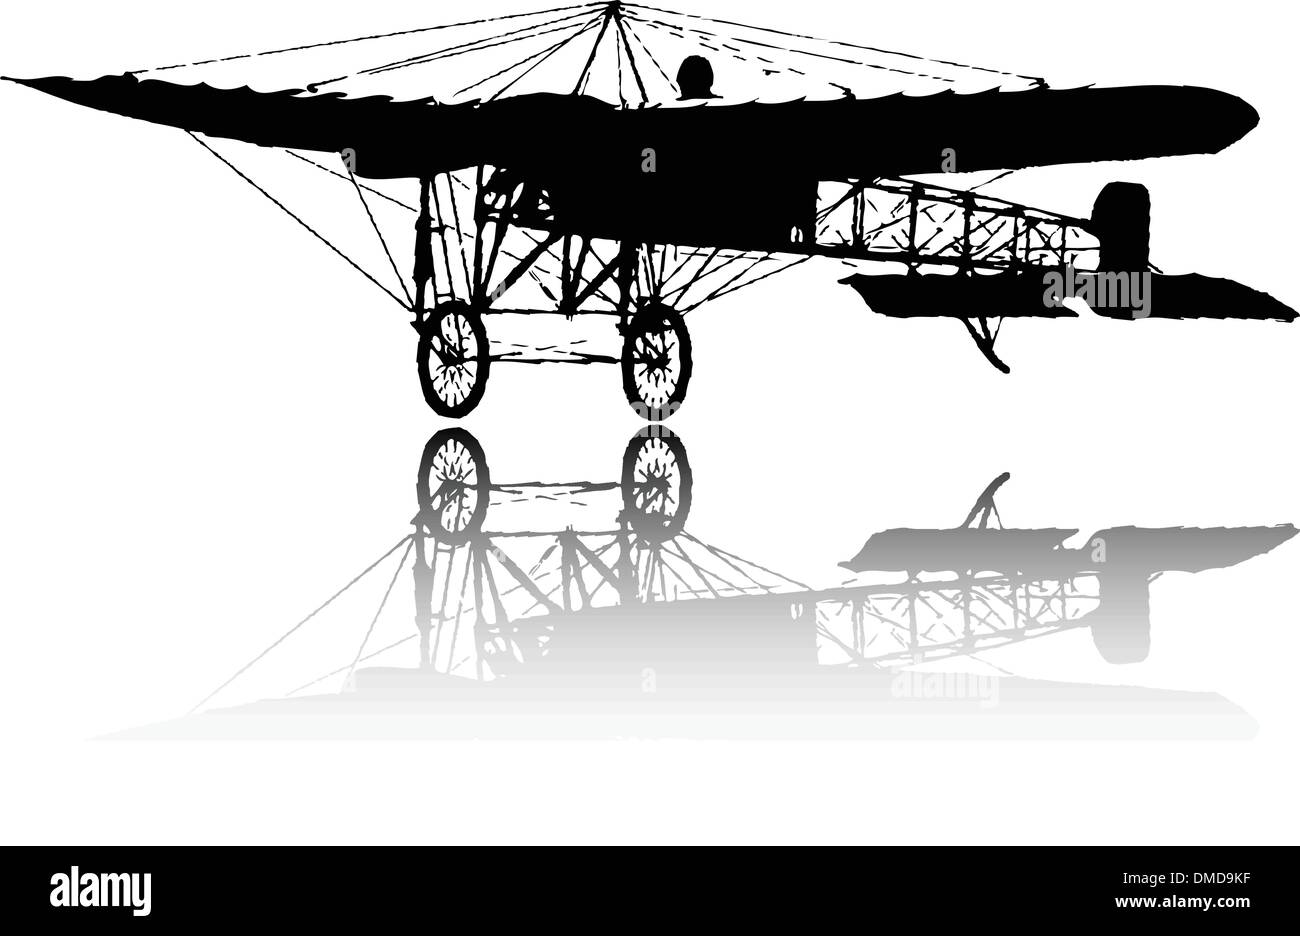 the vector old plane silhouette - Stock Image